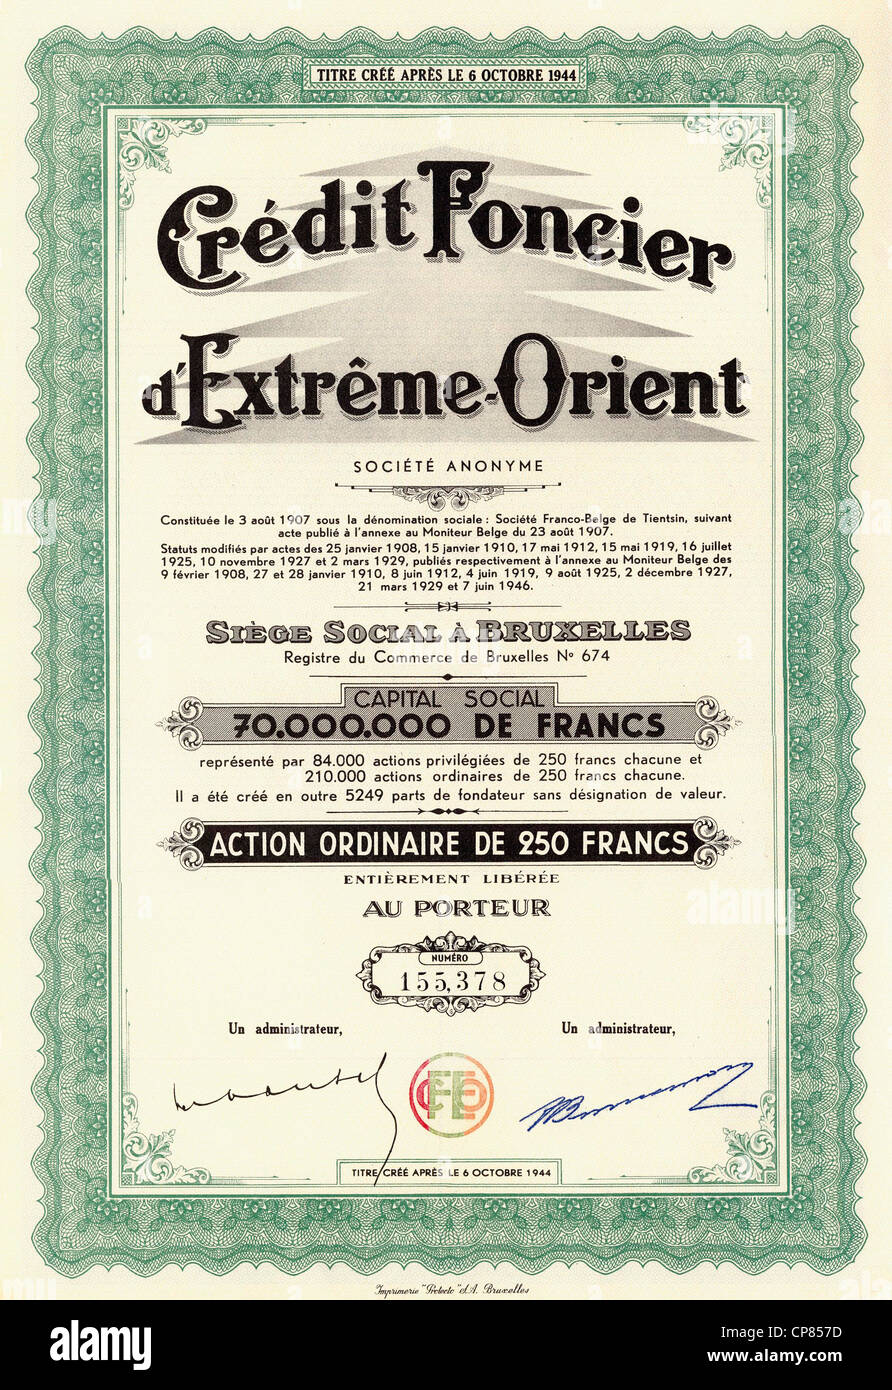 Historic stock certificate banking and finance credit foncier historic stock certificate banking and finance credit foncier dextreme orient 1946 250 belgian francs brussels belgium e xflitez Images